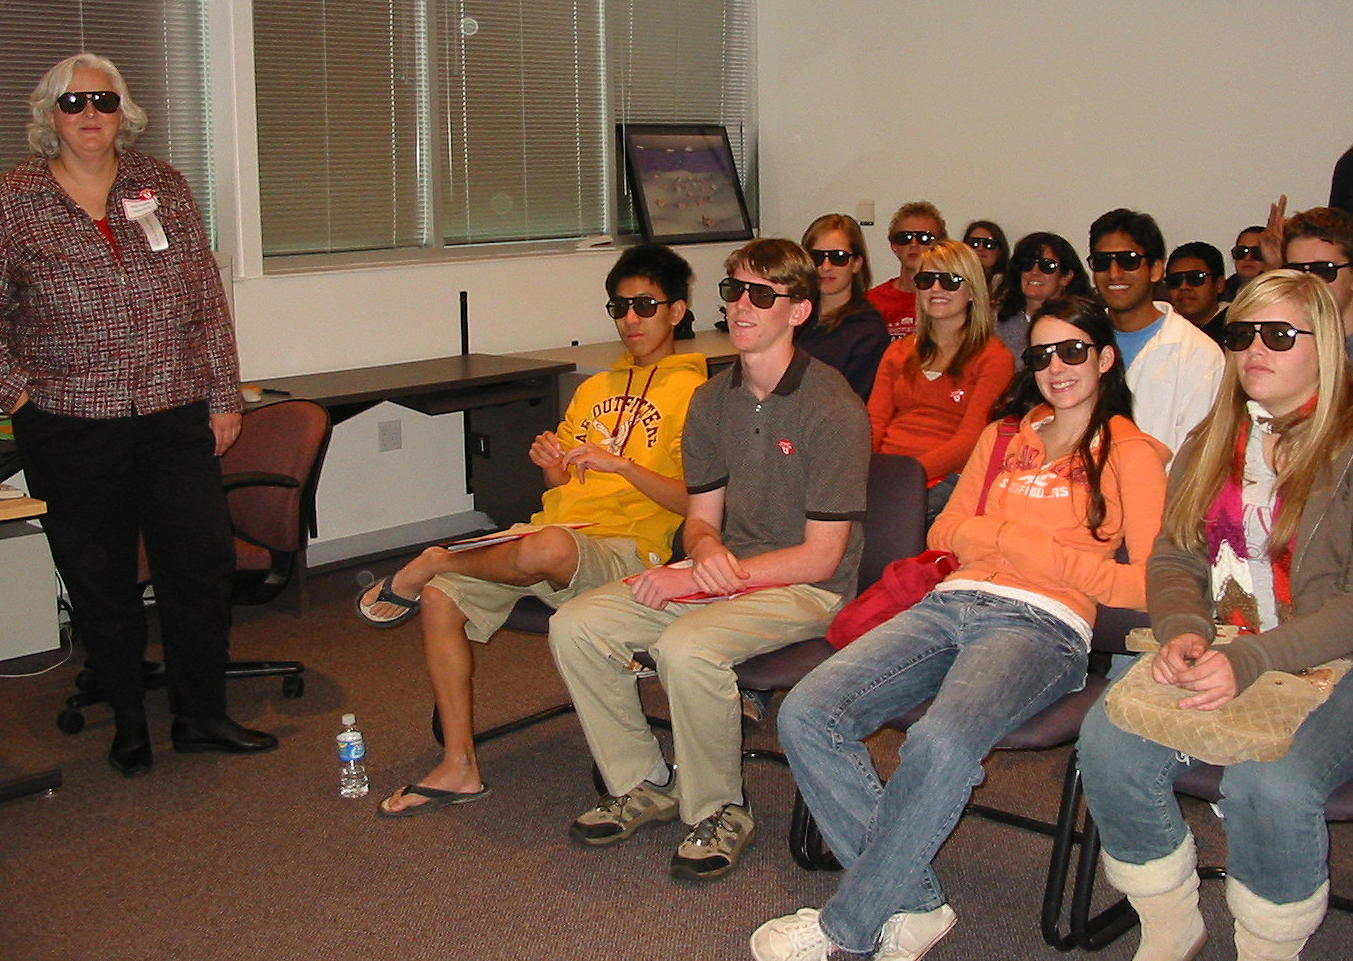 Utah and Idaho high school students wear 3-D glasses, as does staff chemist Anita Orendt, left, during a Science Day at the U demonstration of the visualization capabilities of the University of Utah's Center for High Performance Computing.